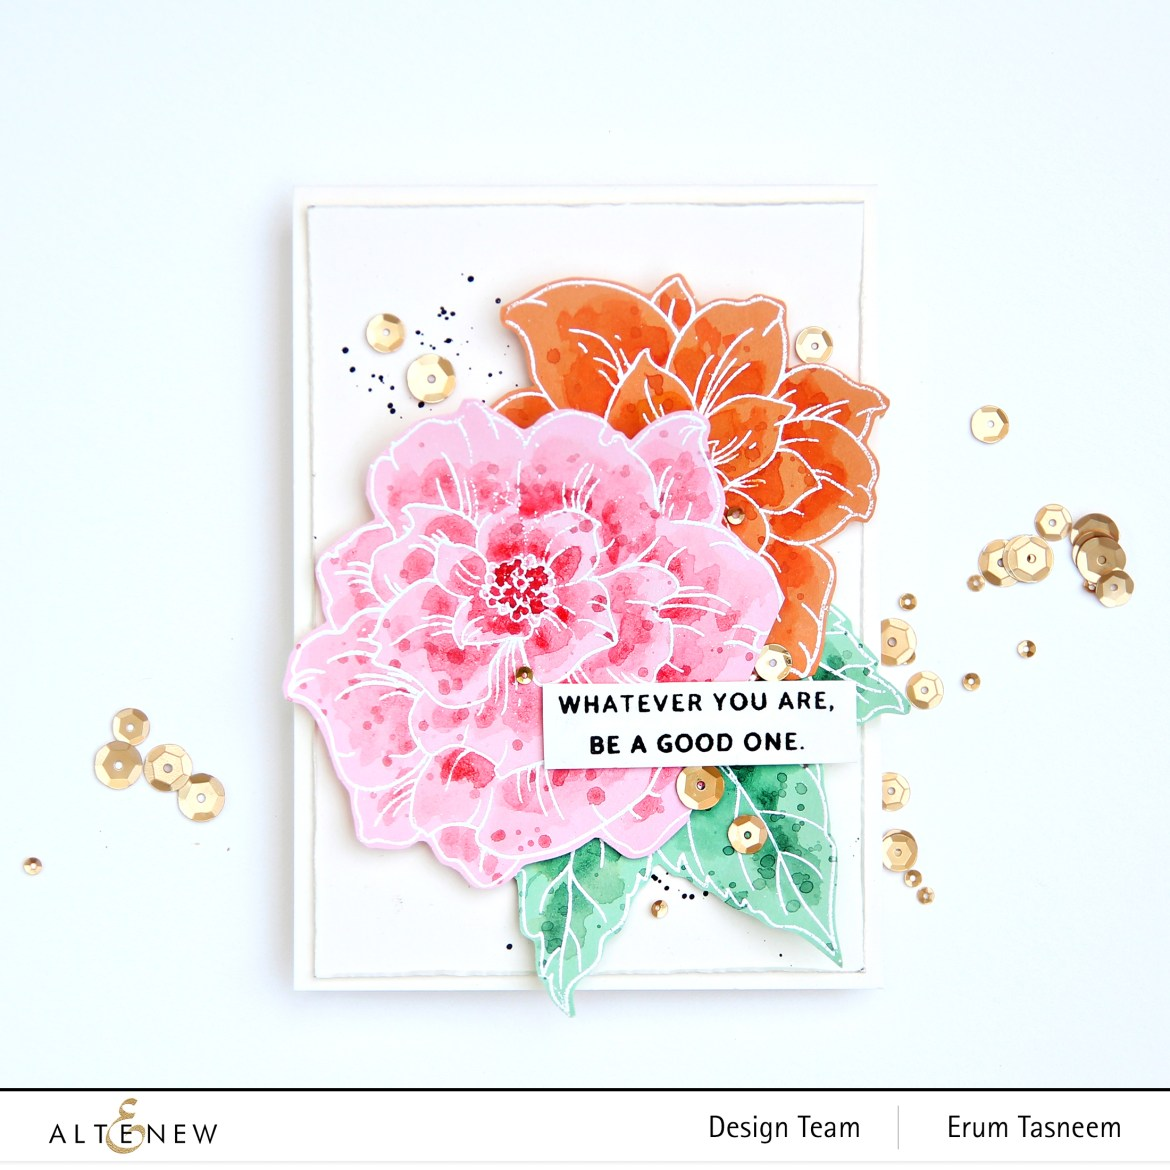 Altenew Courageous You Stamp Set | Erum Tasneem | @pr0digy0